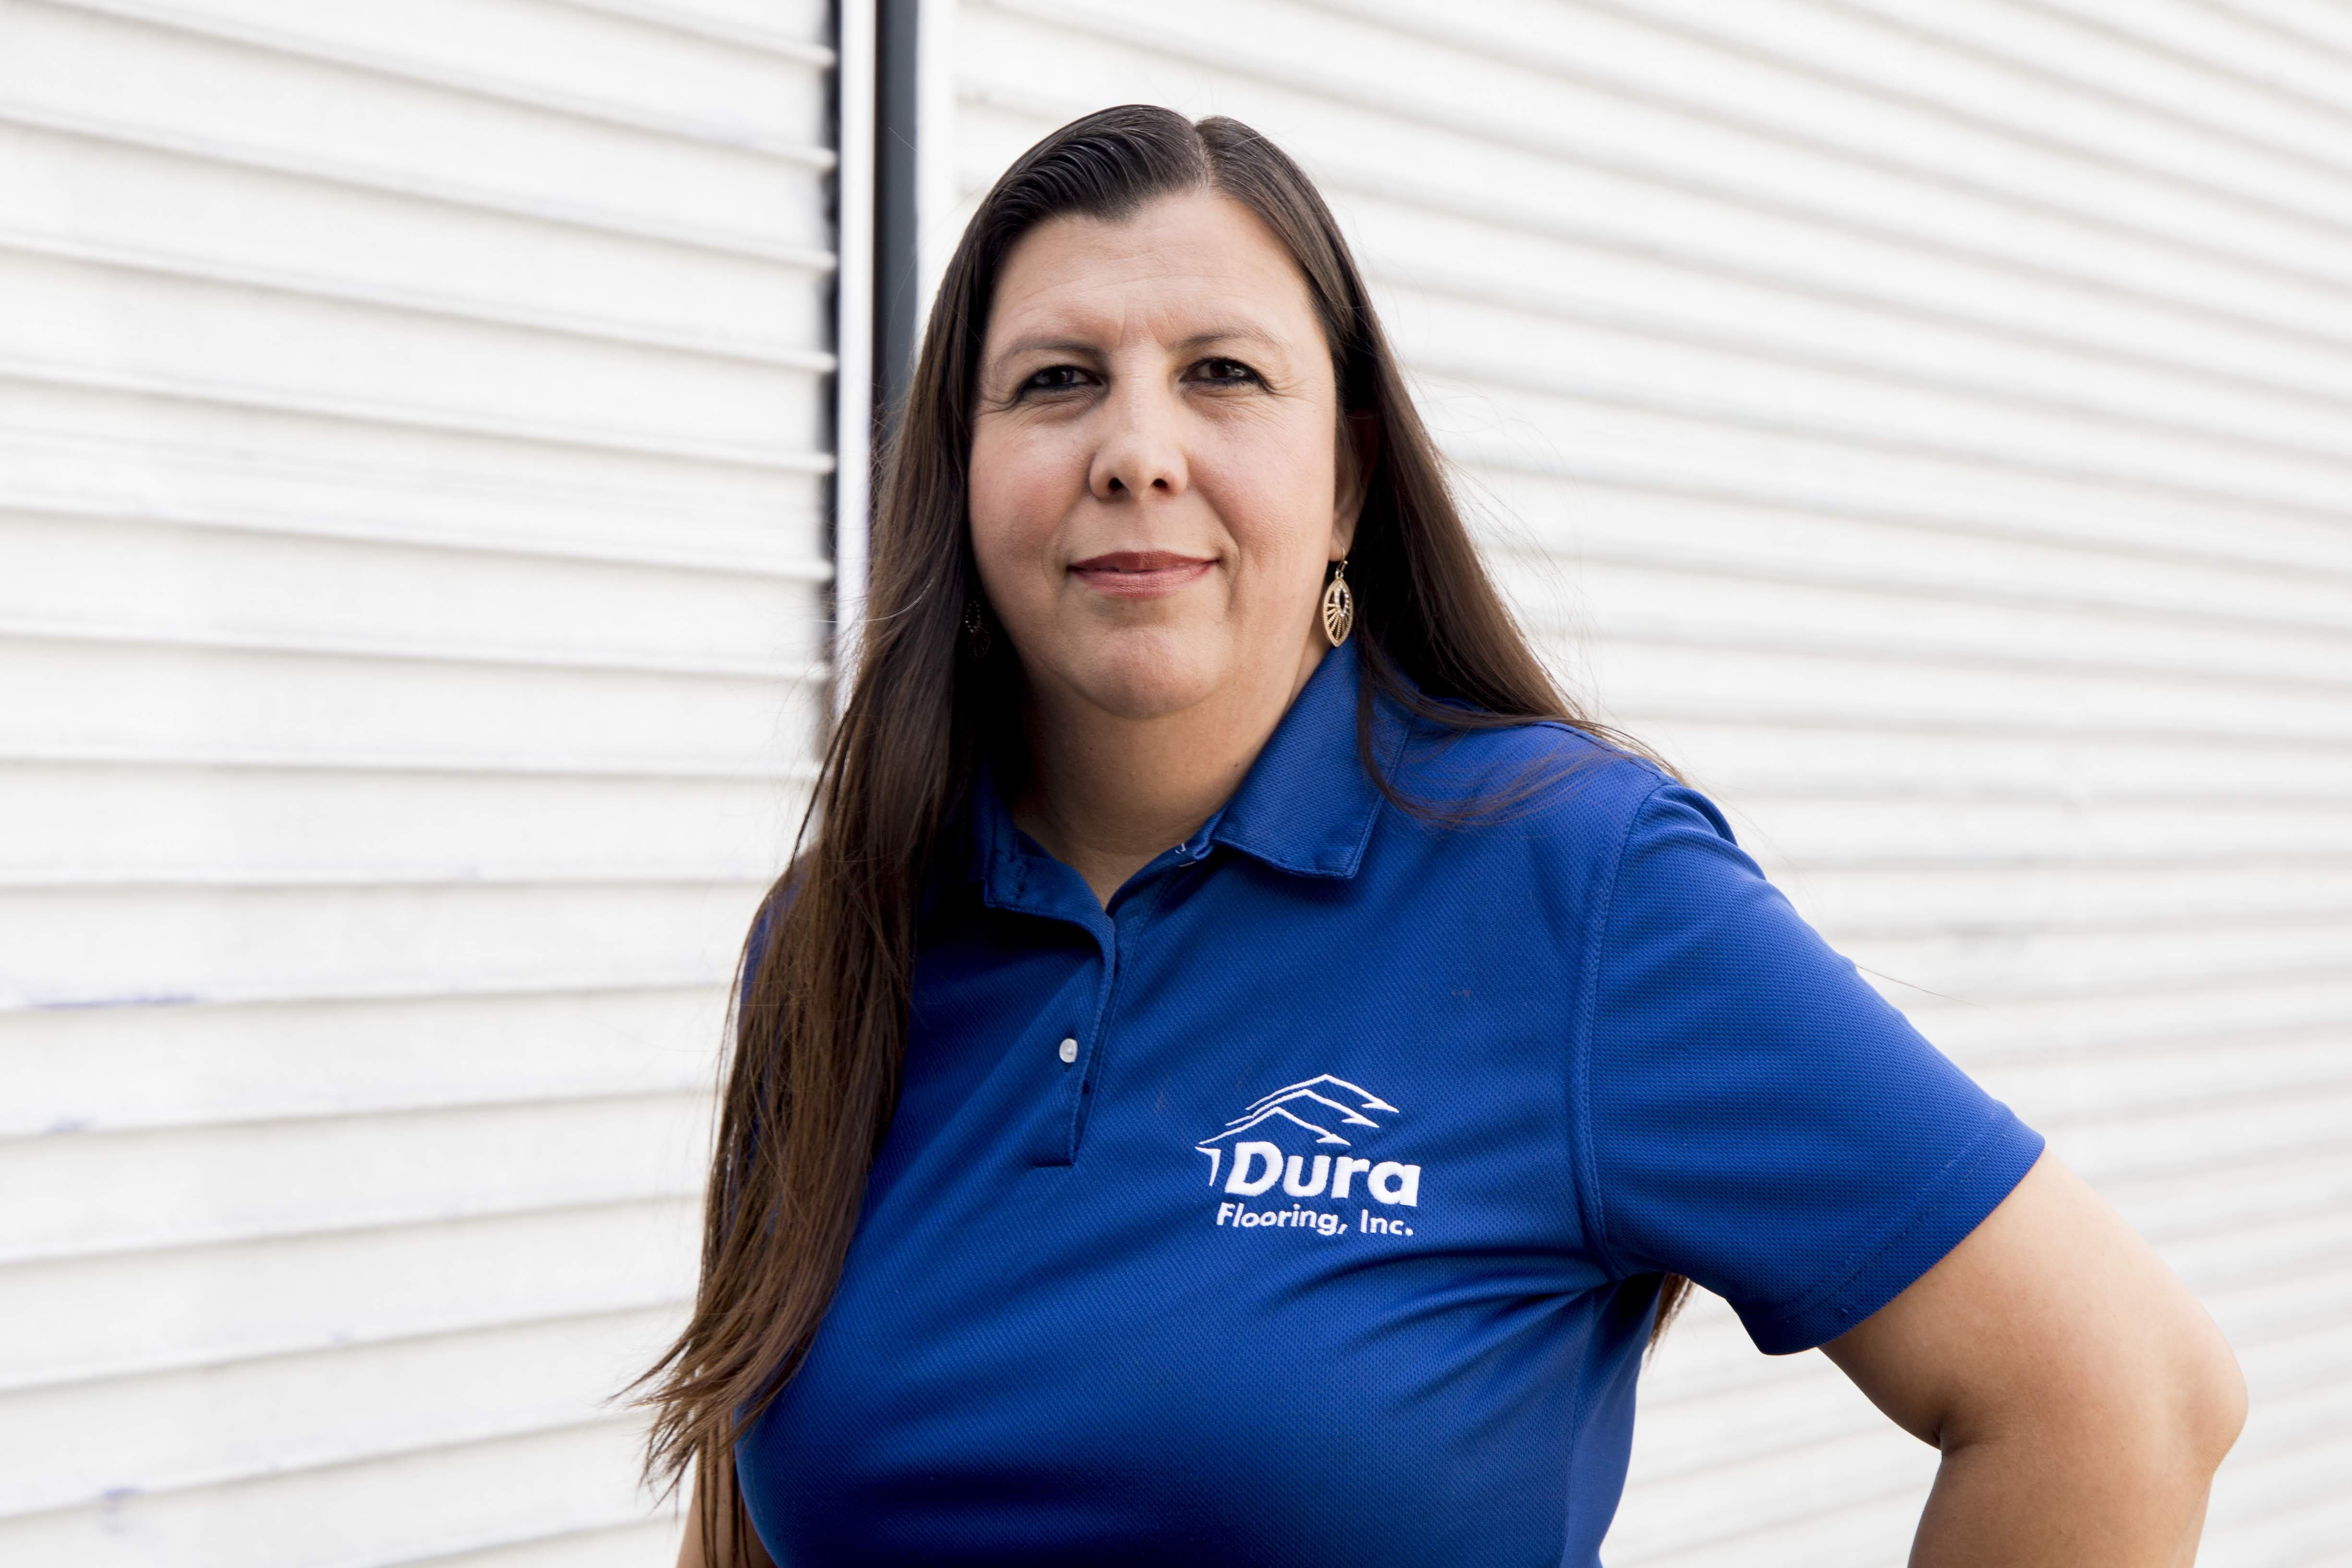 Candy, Wholesale Rep at Dura Flooring, Inc